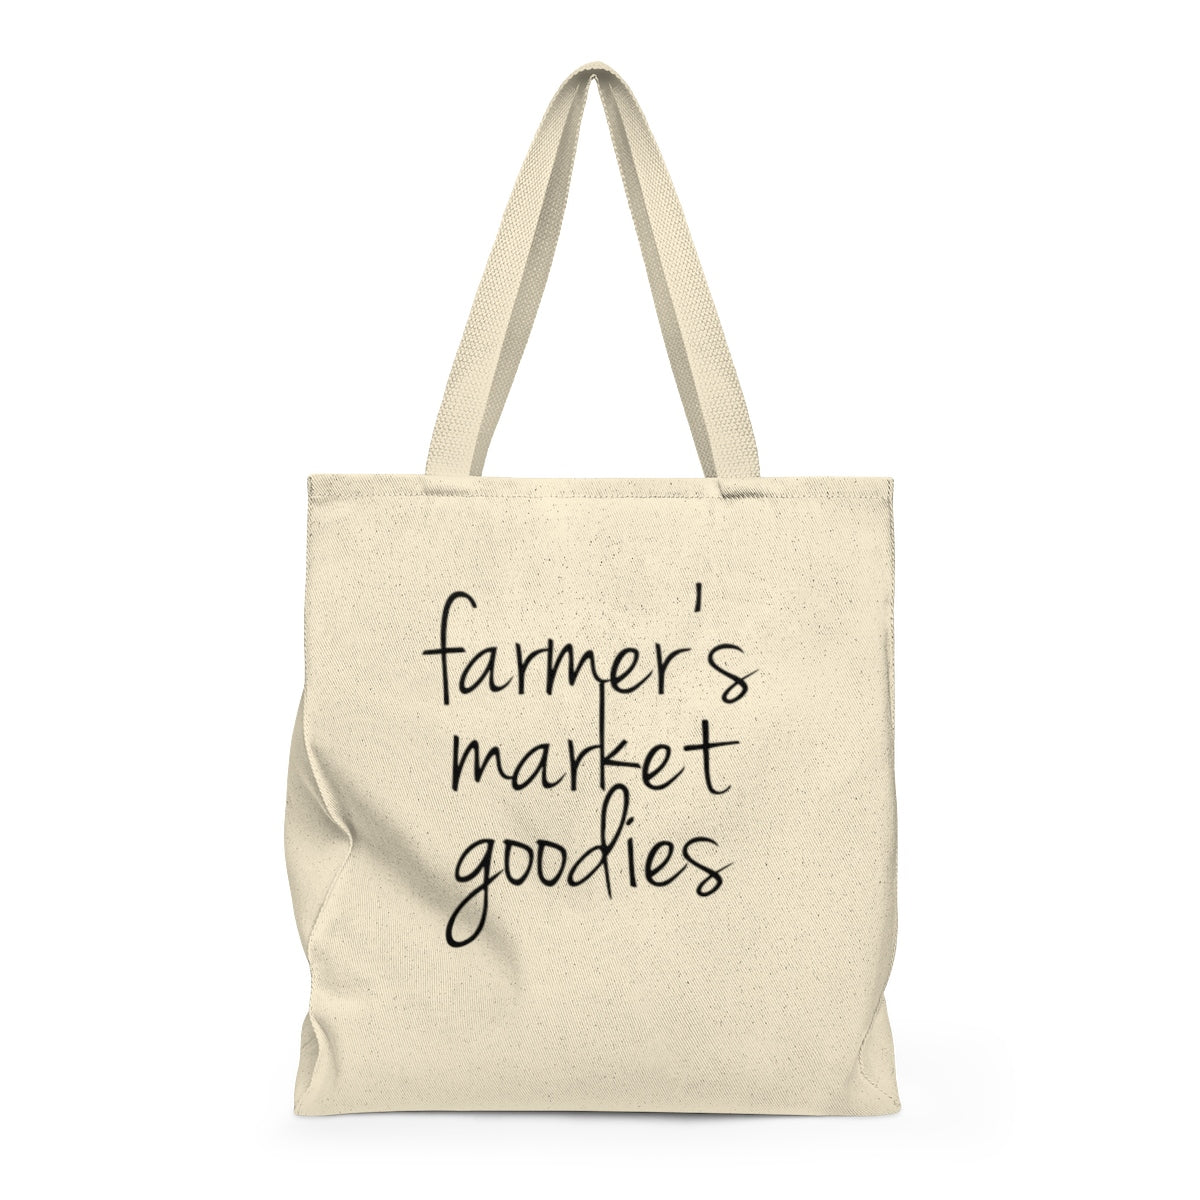 Farmer's Market Goodies Tote